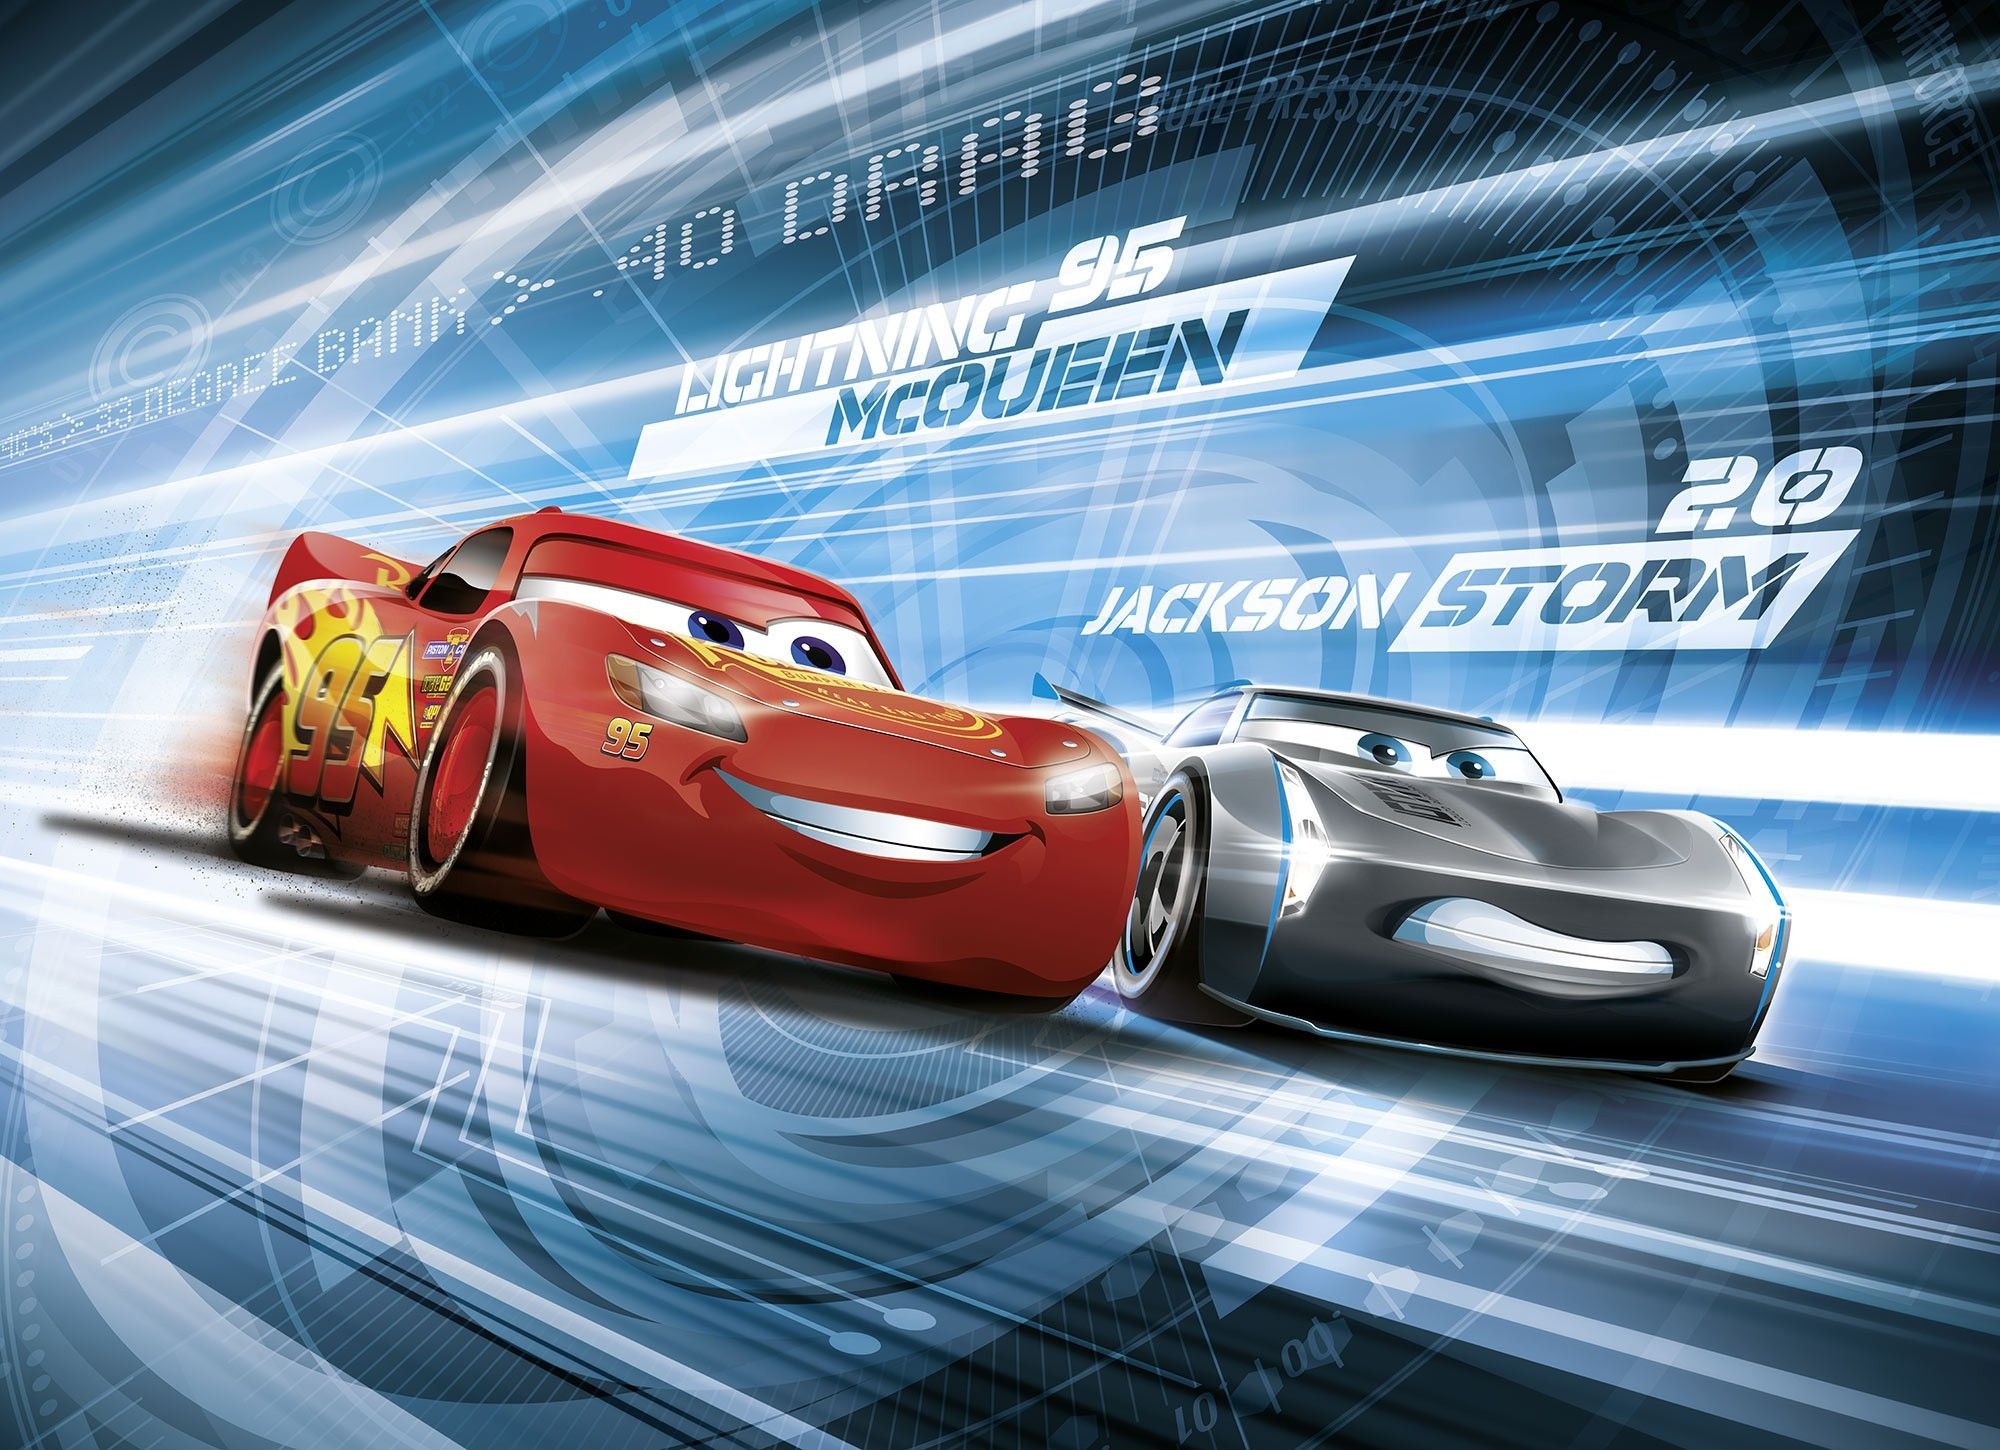 Wall mural photo wallpaper cars 3 disney kids bedroom boy - Disney cars wallpaper ...